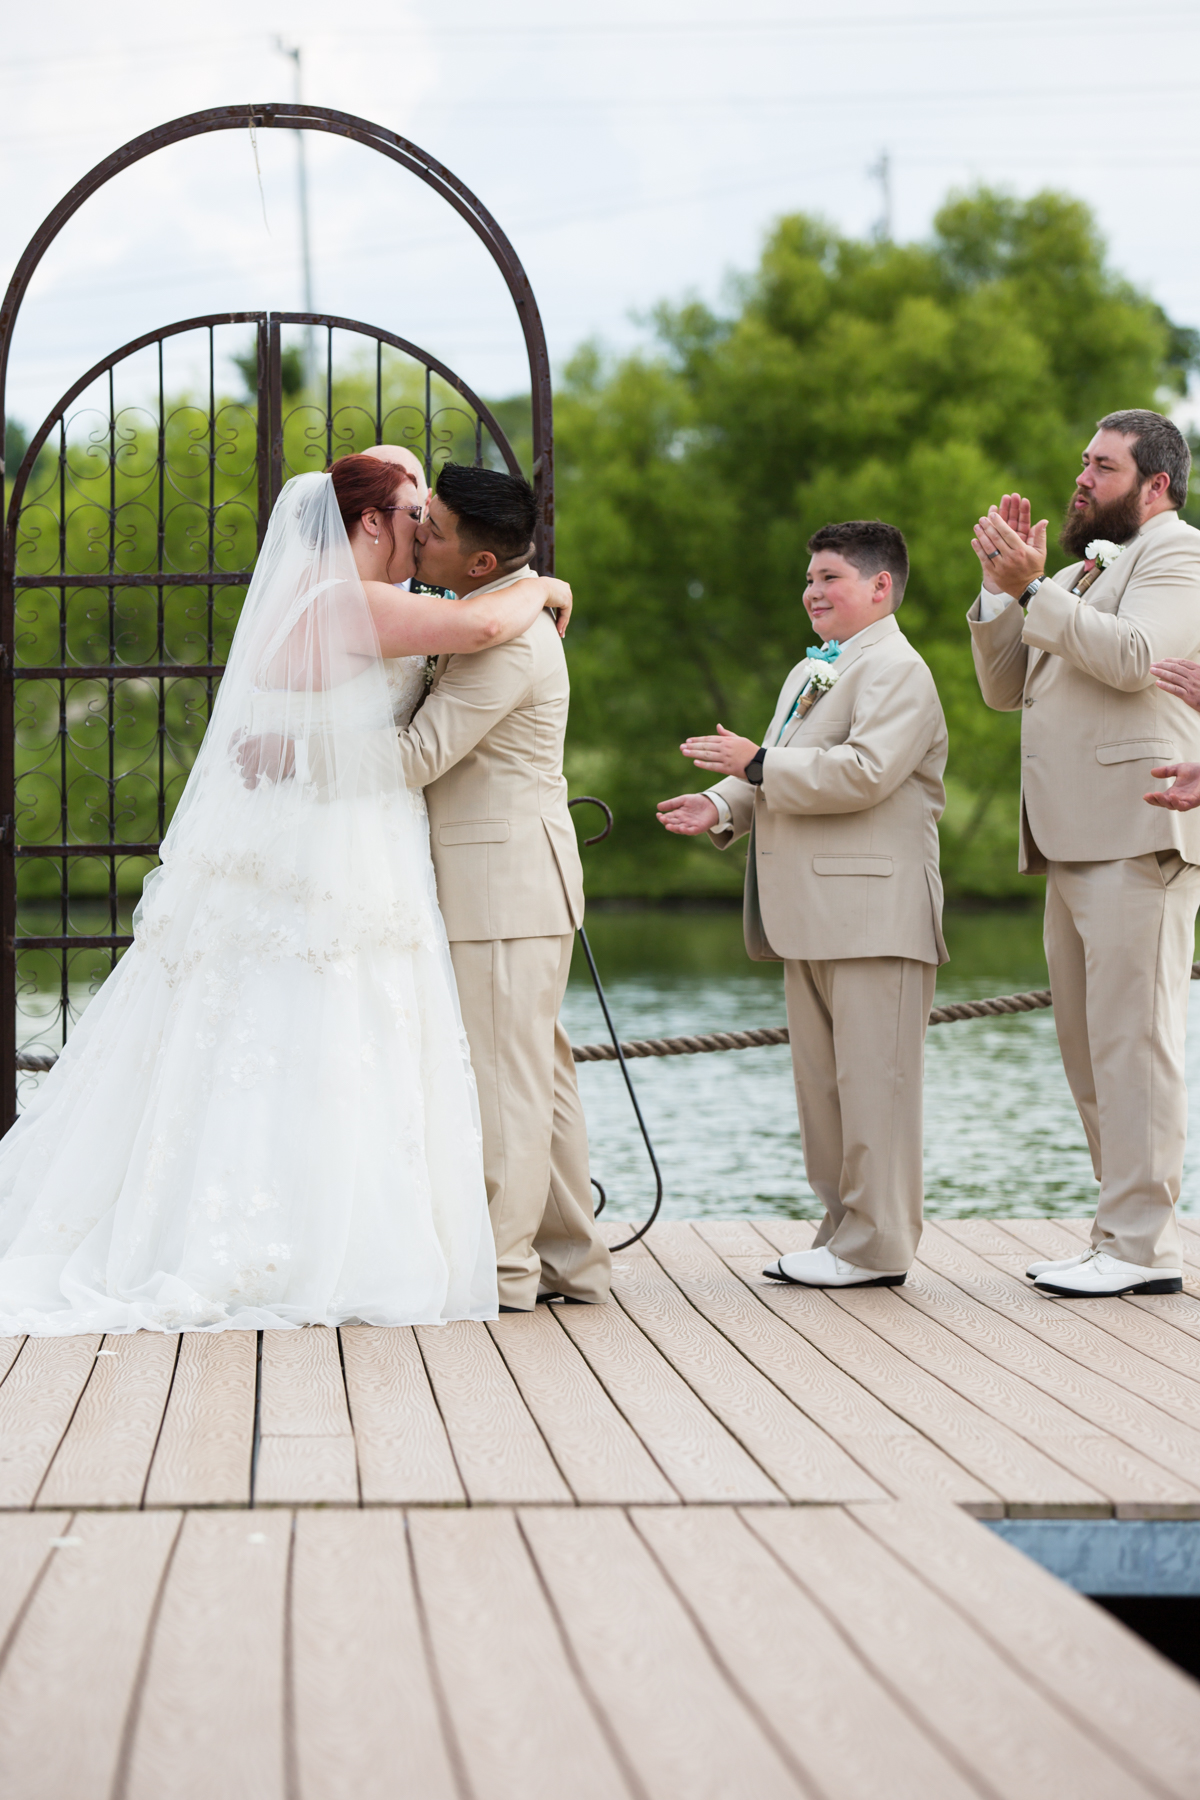 Couples first kiss lakeside ceremony